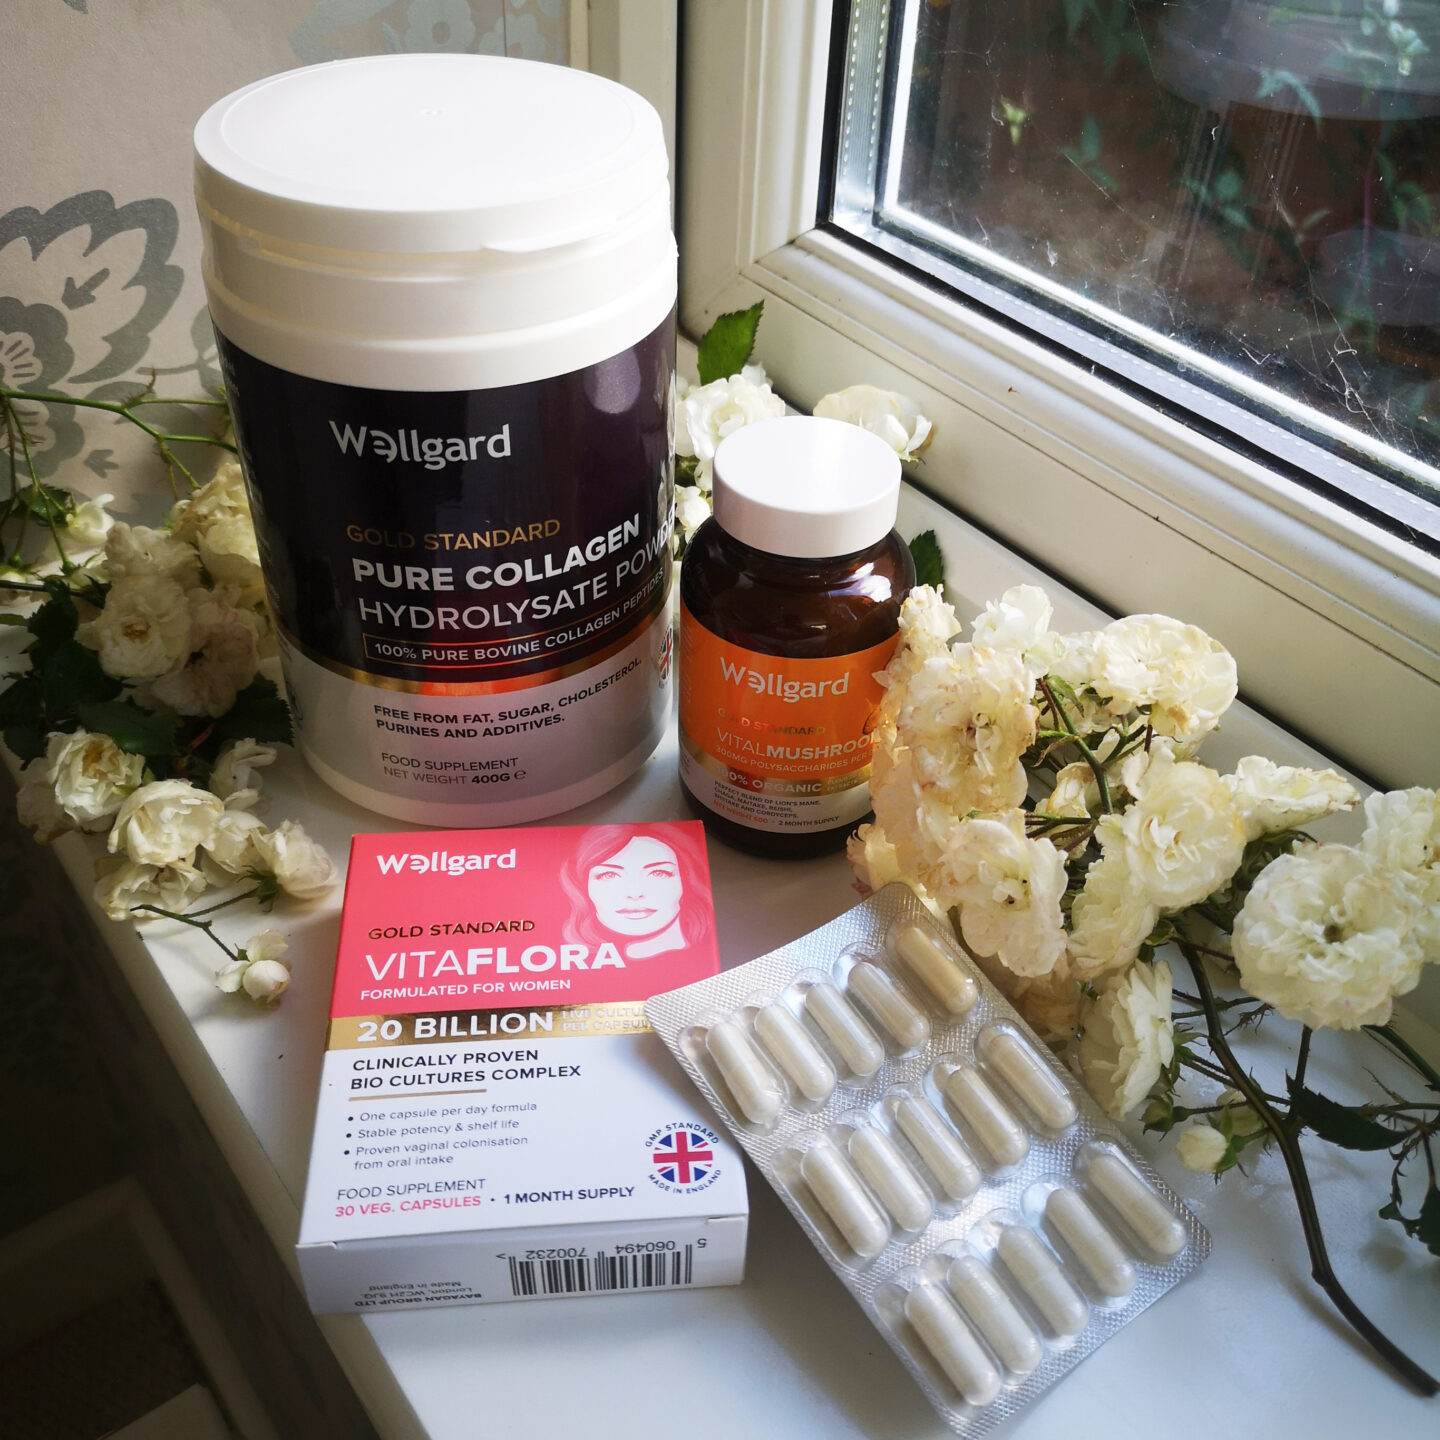 Wellgard Lot, Wellgard, Food Supplements, Probiotics, Wellness, Well-being, Collagen Powder, Giveaway, Win, Competition, the Frenchie Mummy